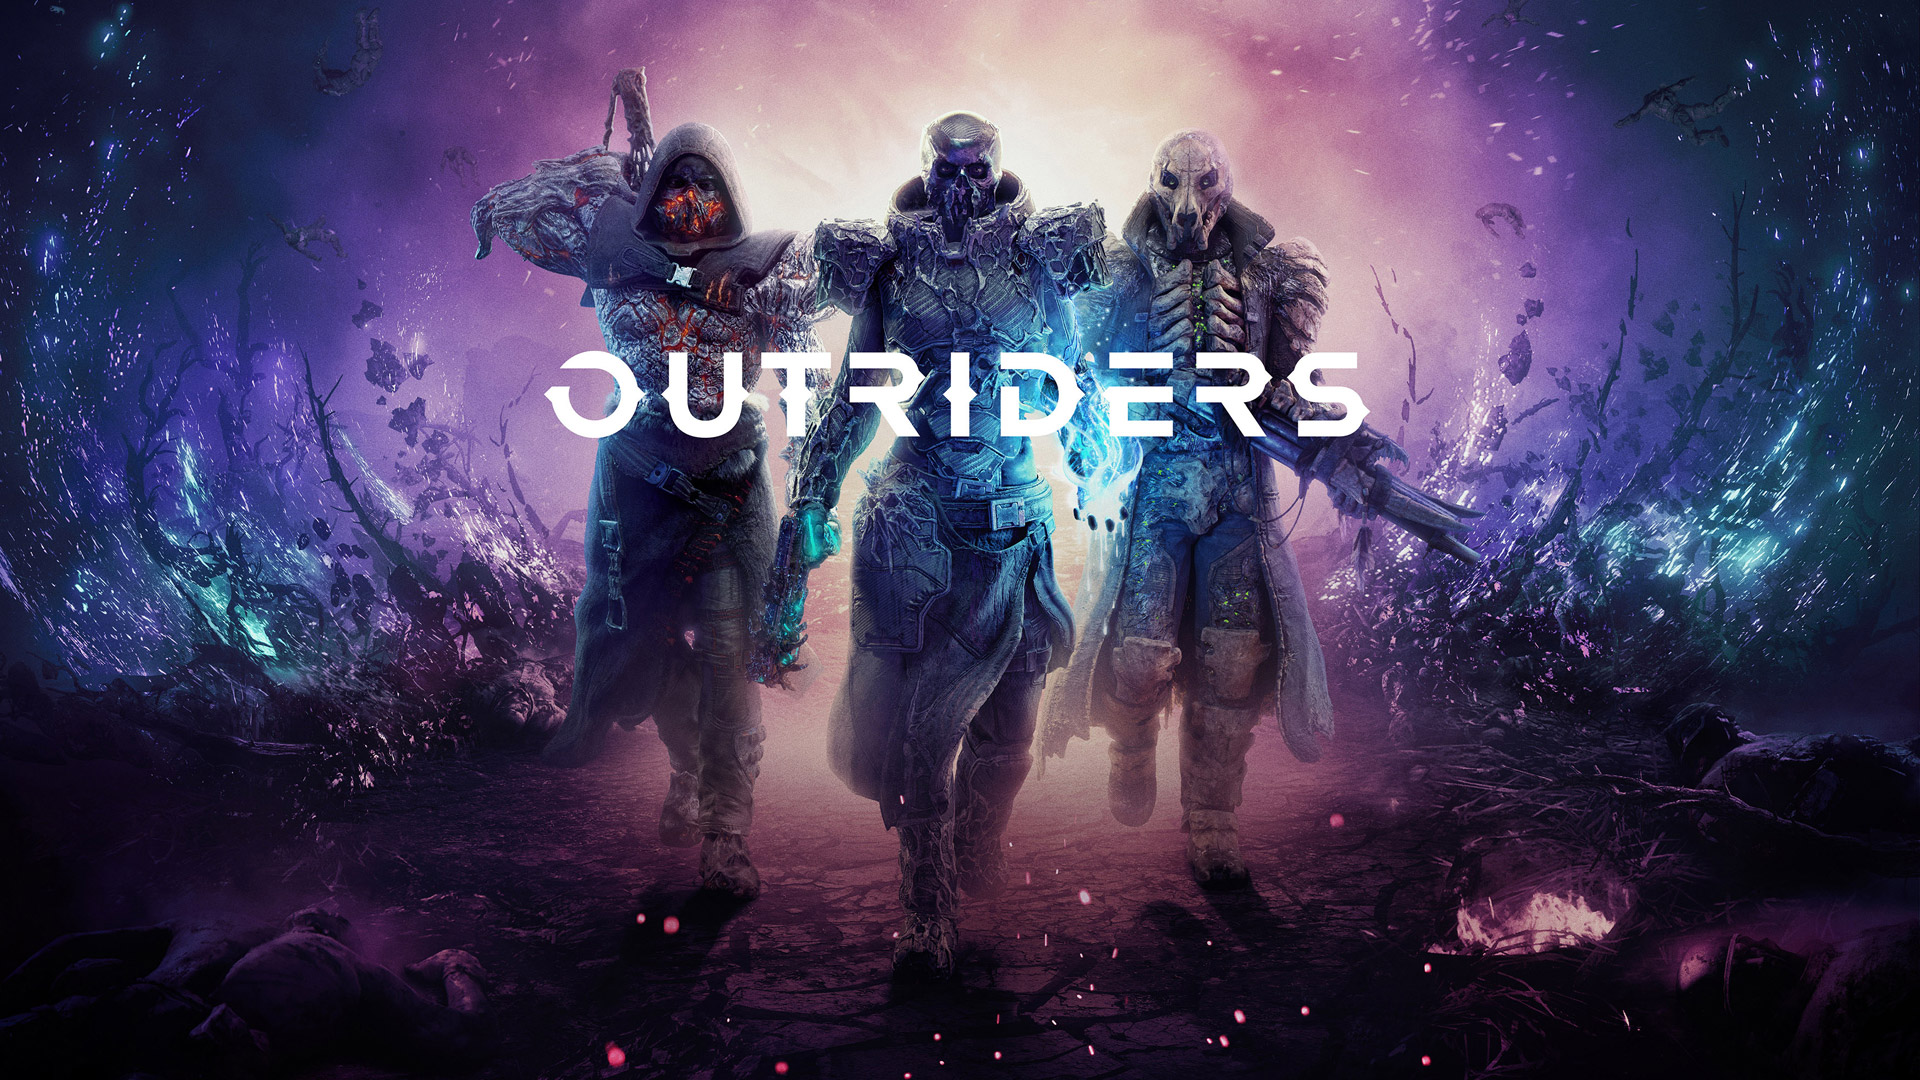 Free Outriders Wallpaper in 1920x1080